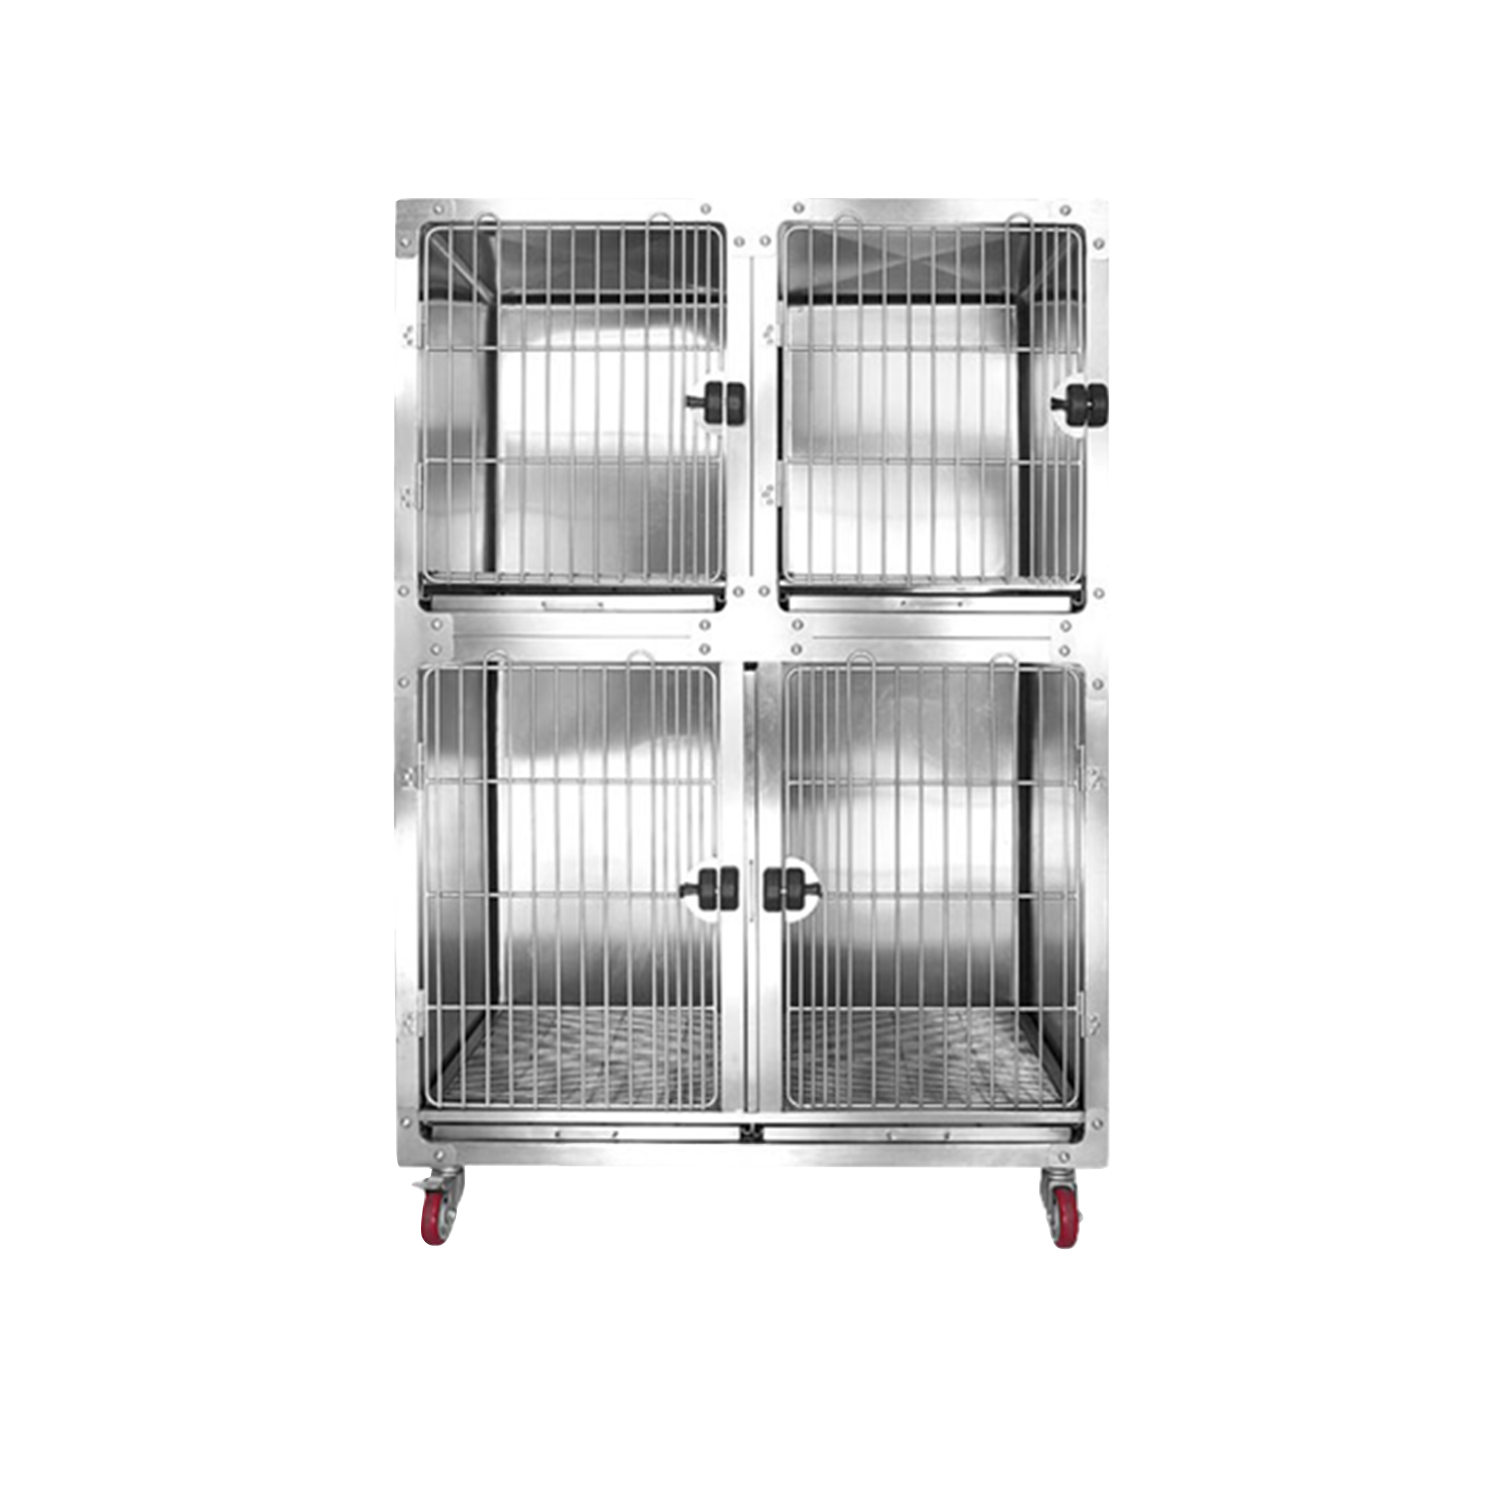 Stainless Steel Rounded Corner Cage with Waster Tray and Floor Grid